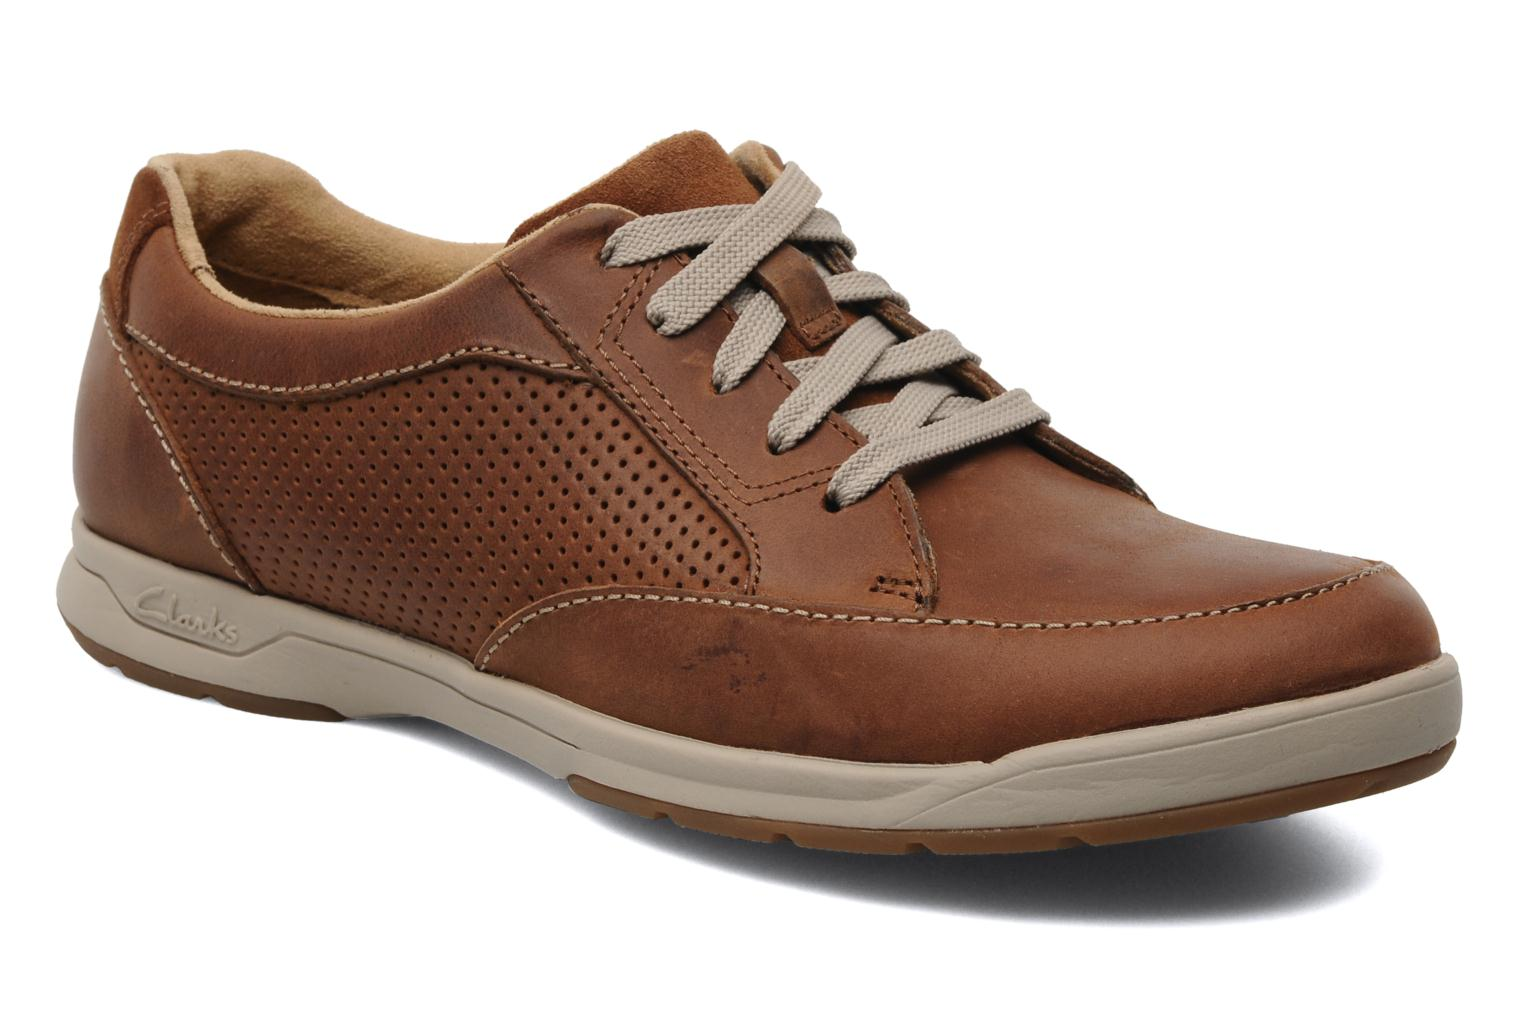 Baskets Clarks Unstructured Stafford Park5 Marron vue détail/paire